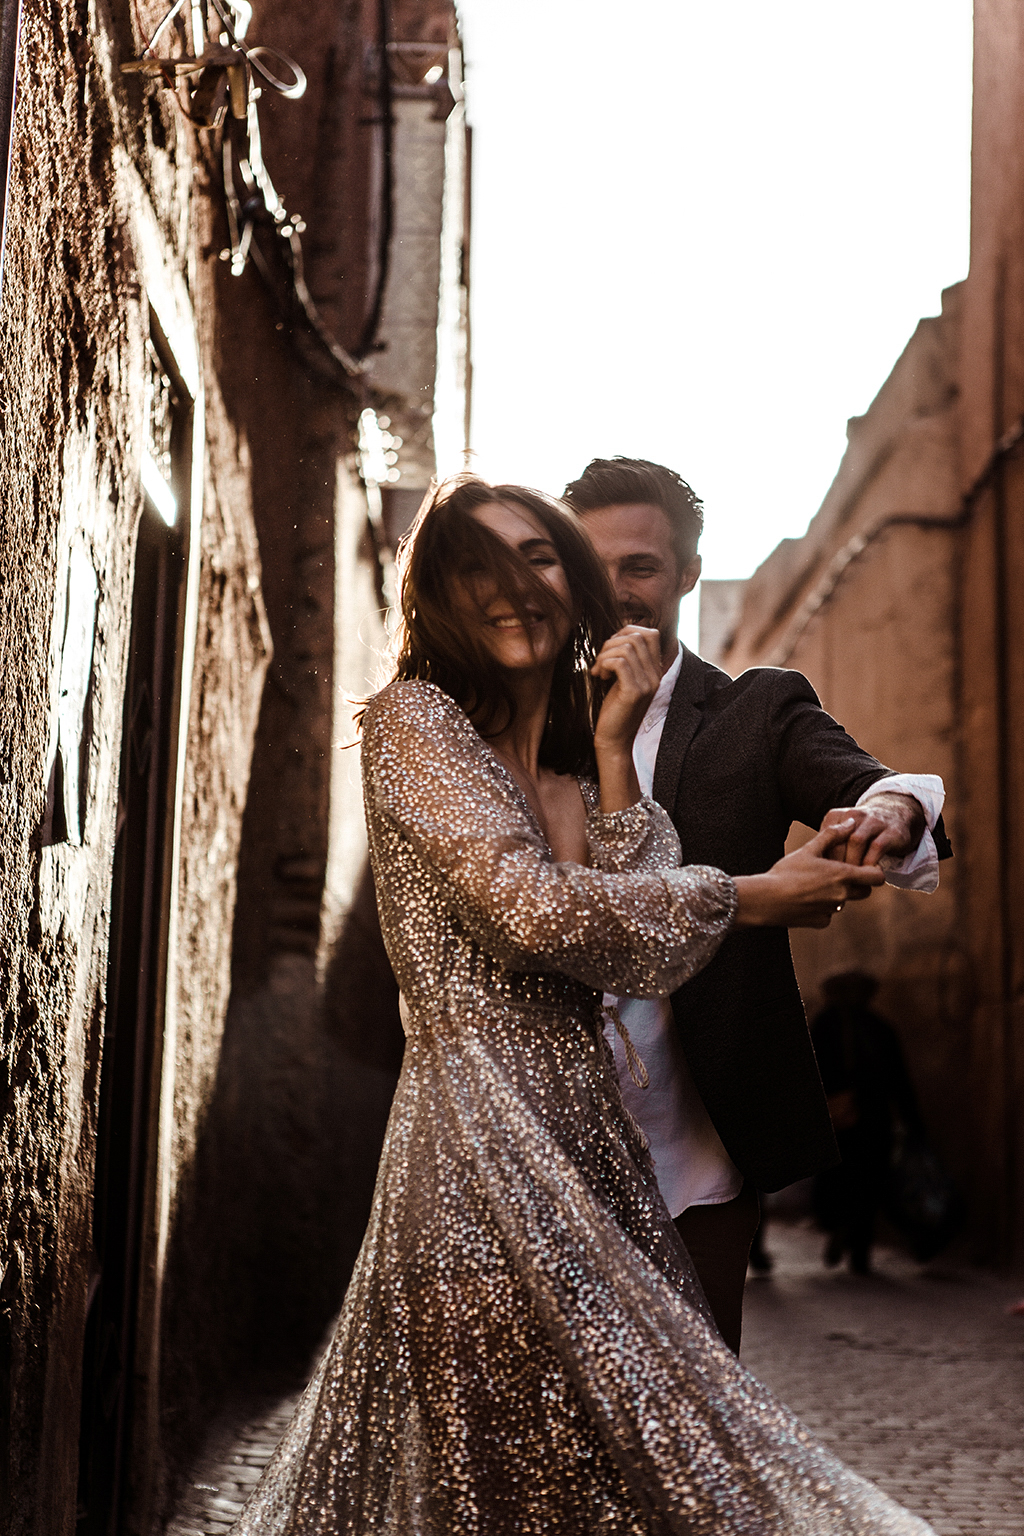 elena-engels-fotografie-marrakech-travel-shooting-reise-bemarrakech_riad_wedding083